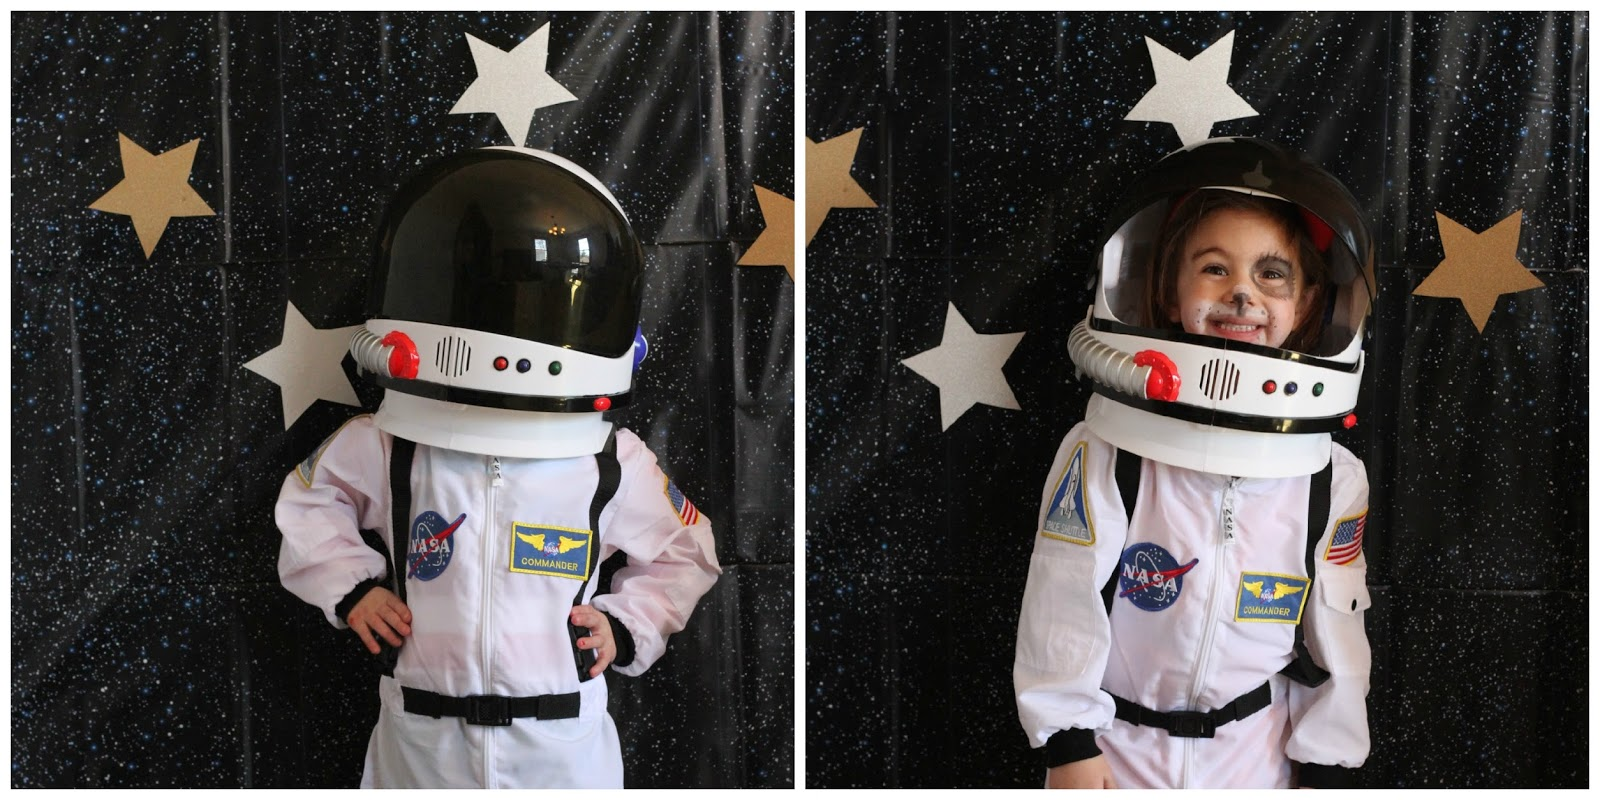 astronaut kid space - photo #9